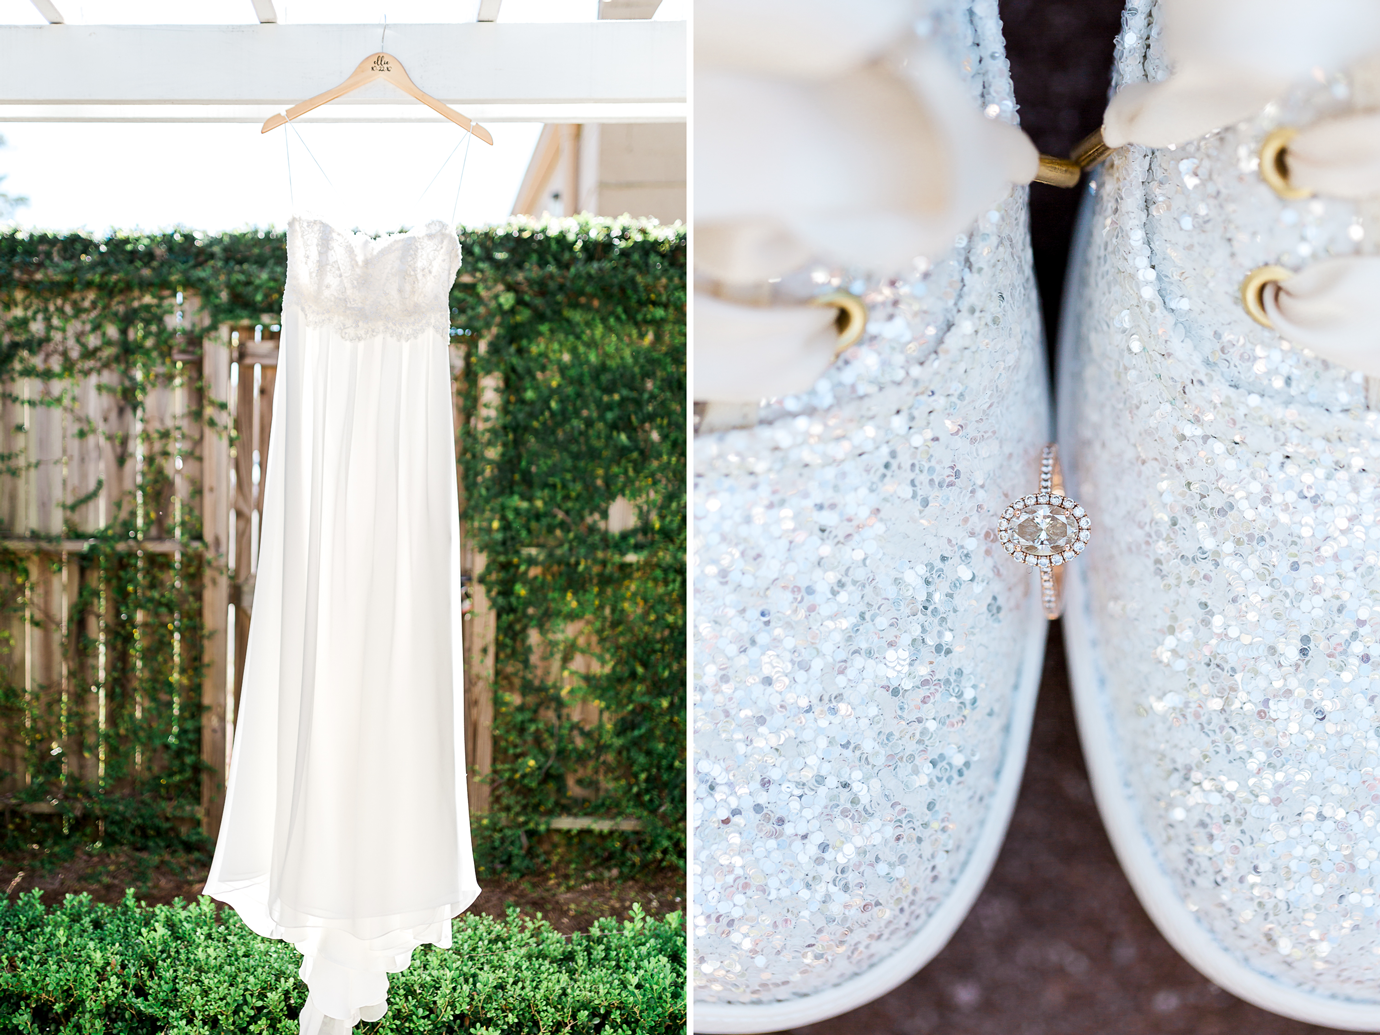 wedding dress by Linda Cunningham. Kate Spade shoes and ring. Wedding in jacksonville fl.png